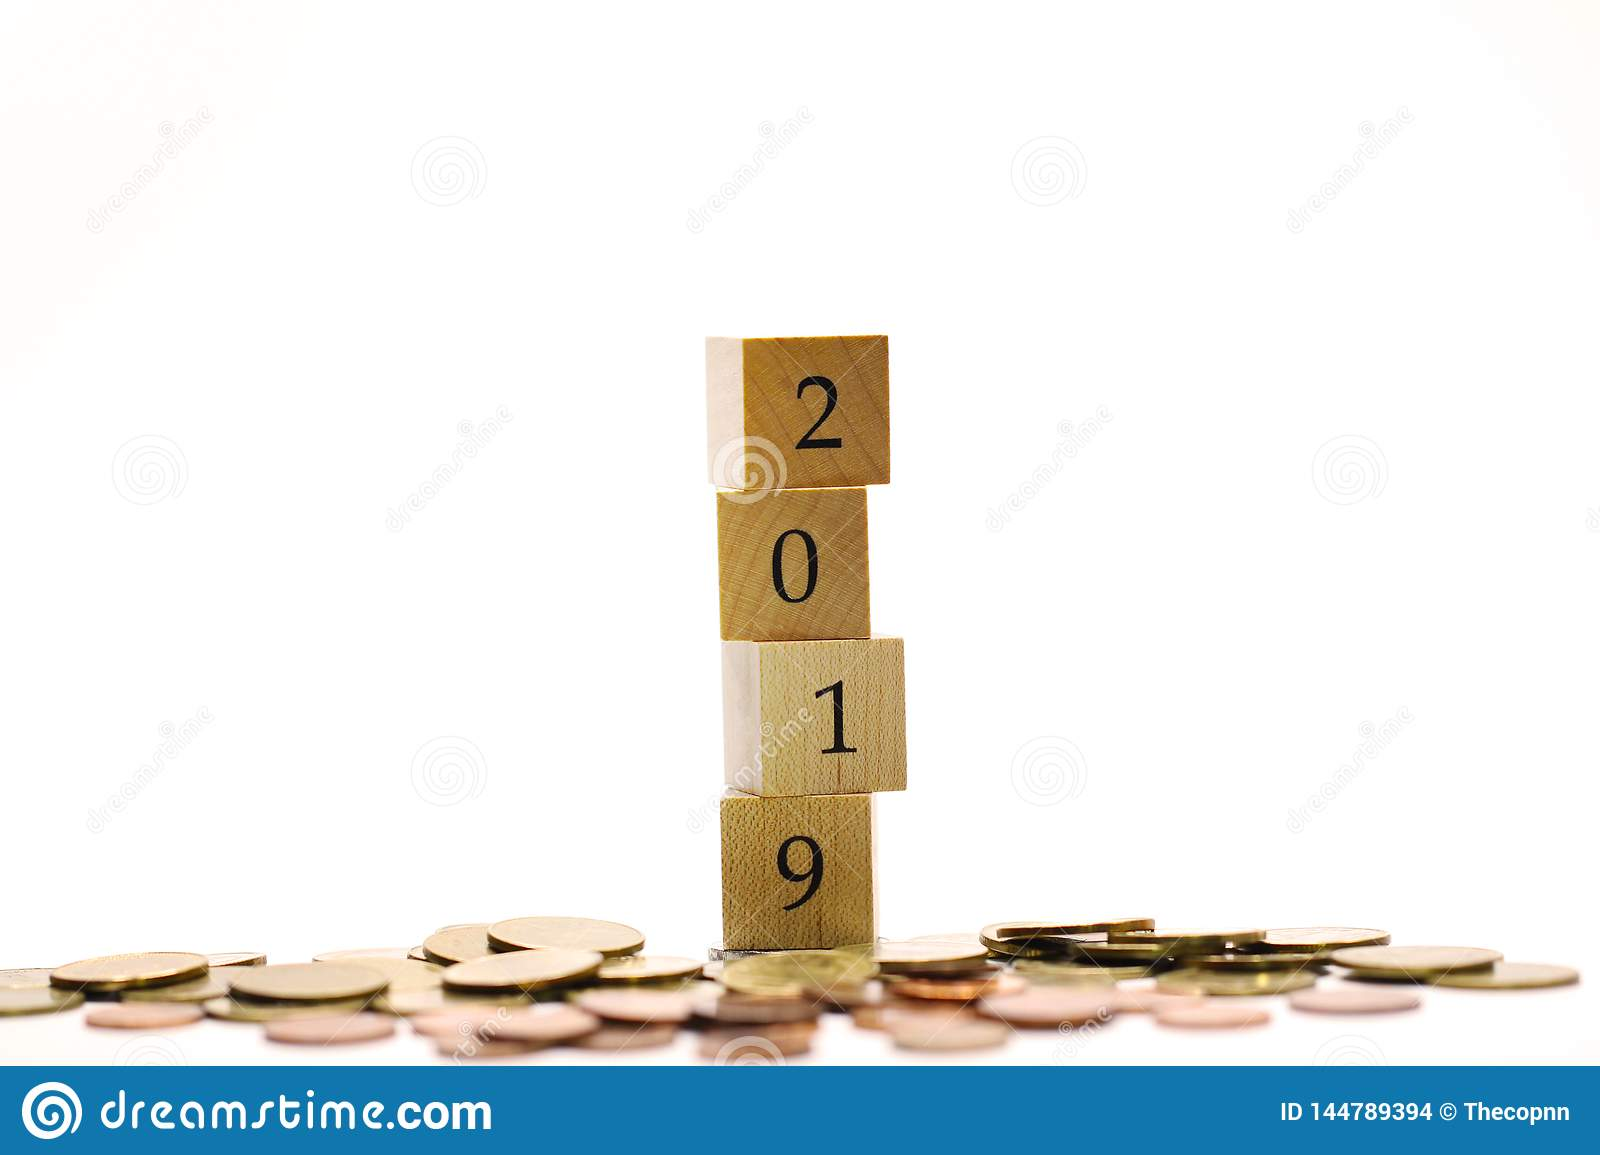 Year 2019 from wooden block surrounding by pile of coins